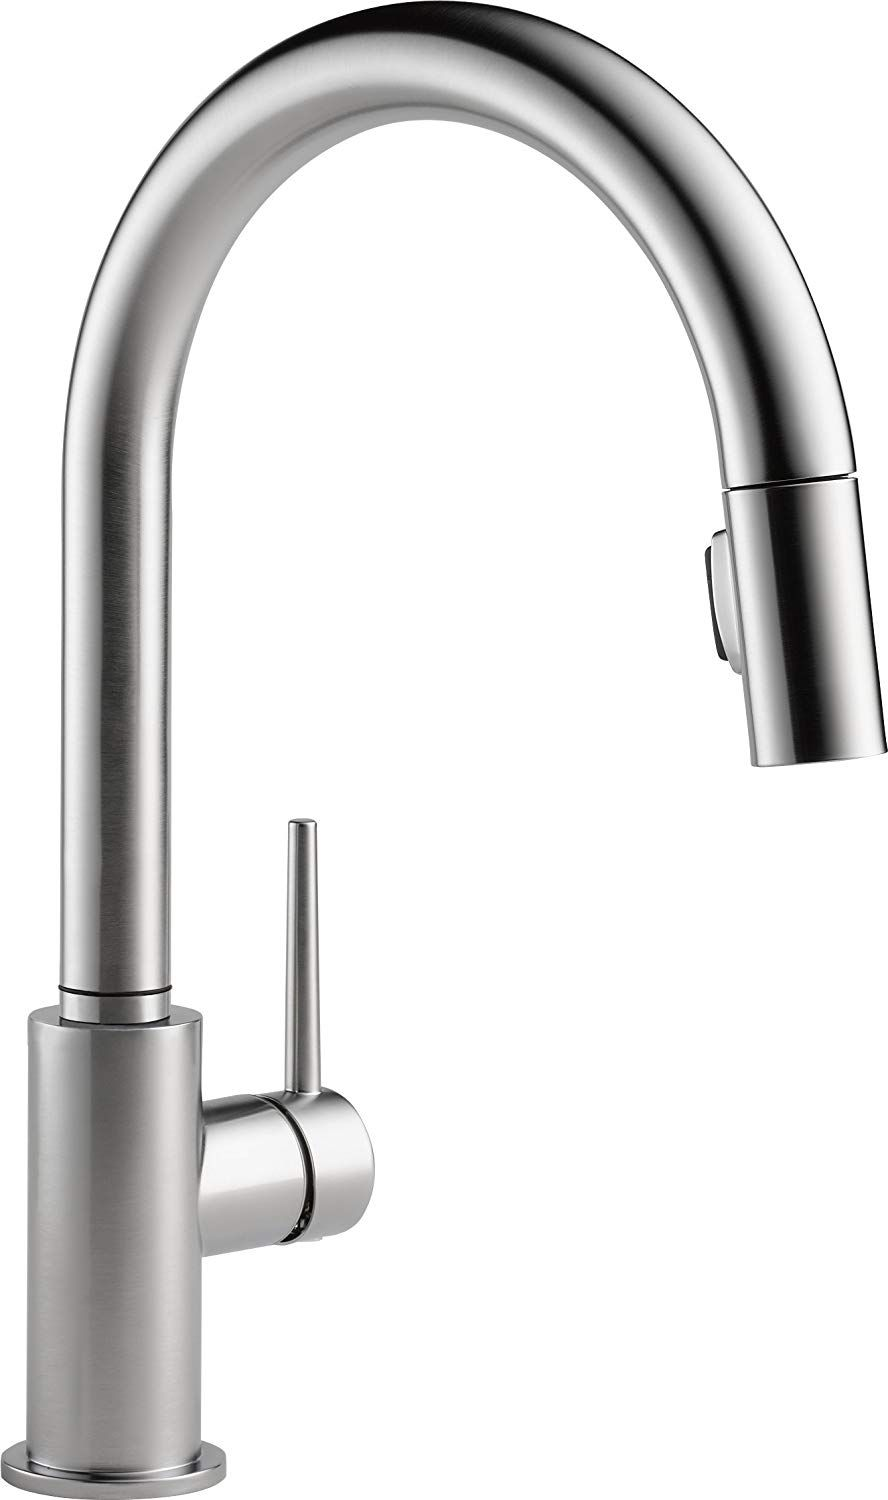 Delta Faucet Trinsic Single Handle Kitchen Sink Faucet With Pull Down Sprayer And Magnetic Dock Modern Kitchen Faucet Touch Kitchen Faucet Best Kitchen Faucets